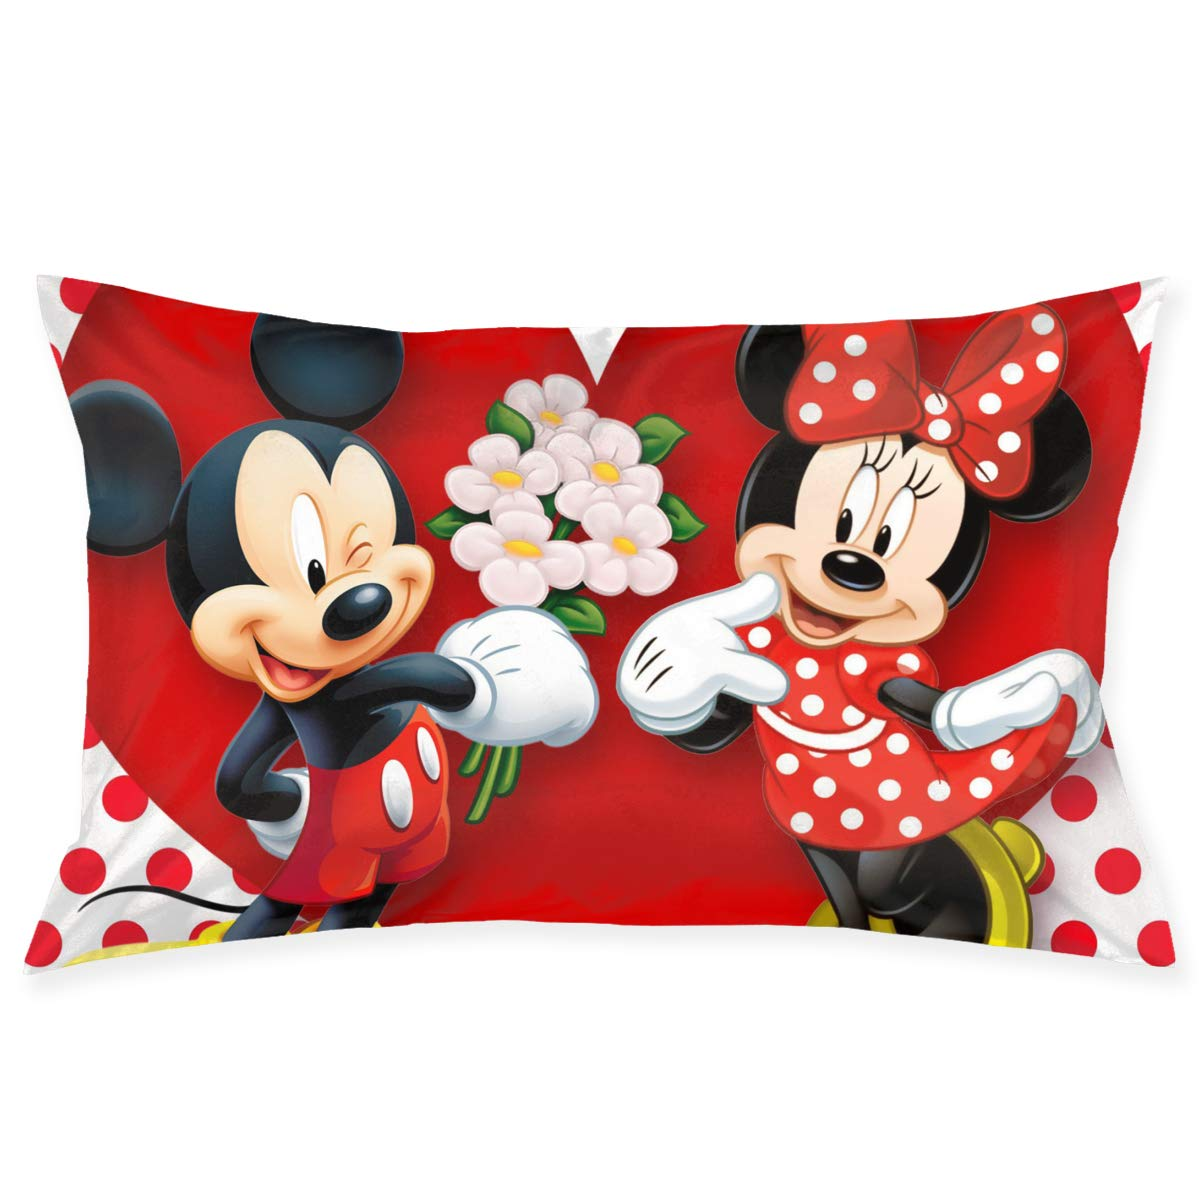 Amazon.com: Pillow Cases Mickey Mouse Minnie Love Couple ...